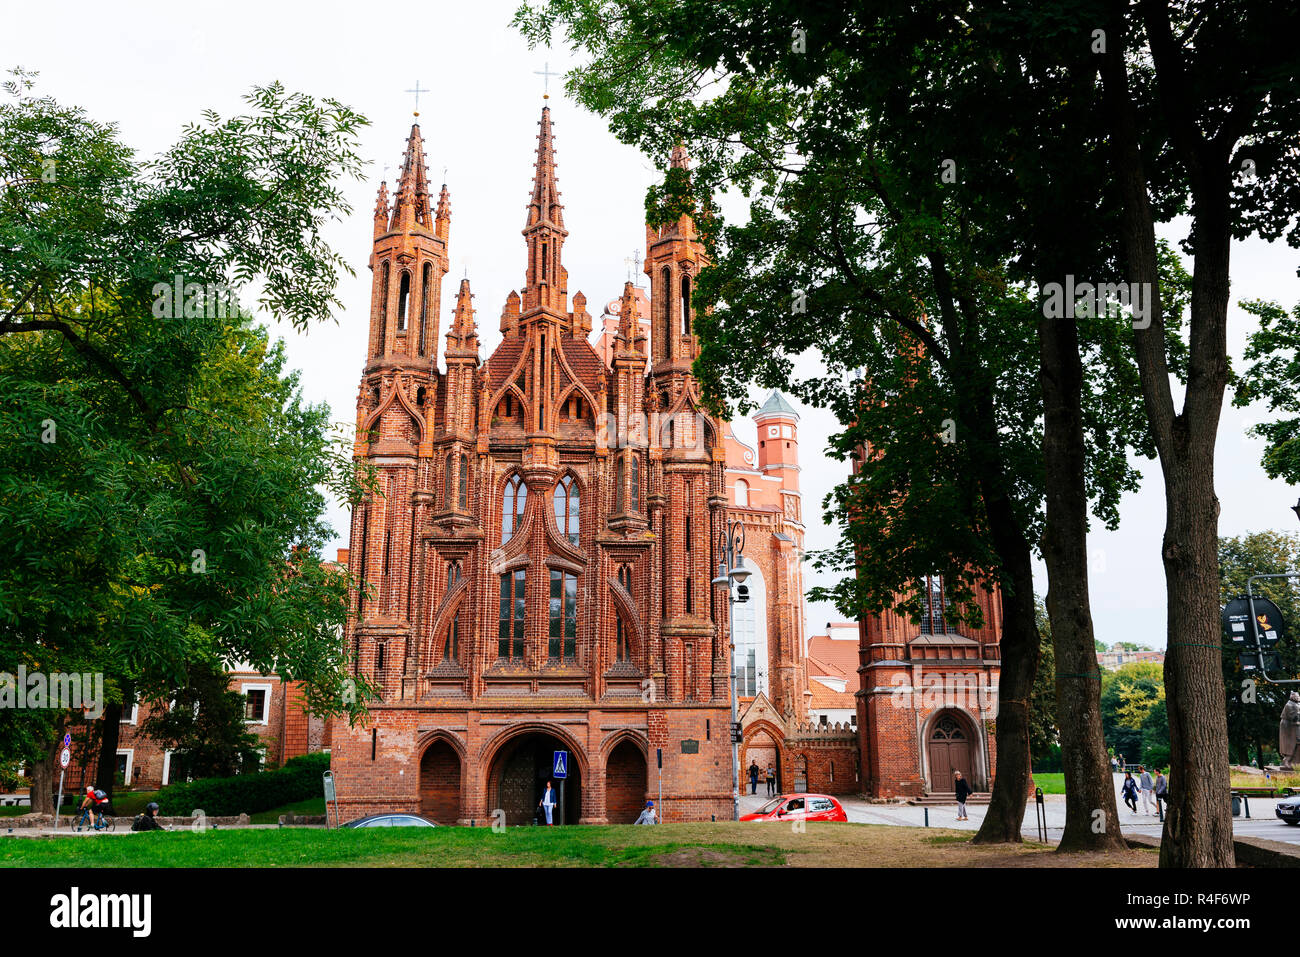 Facade of St. Anne's Church is a Roman Catholic church in Vilnius Old Town. It is a prominent example of both Flamboyant Gothic and Brick Gothic style - Stock Image